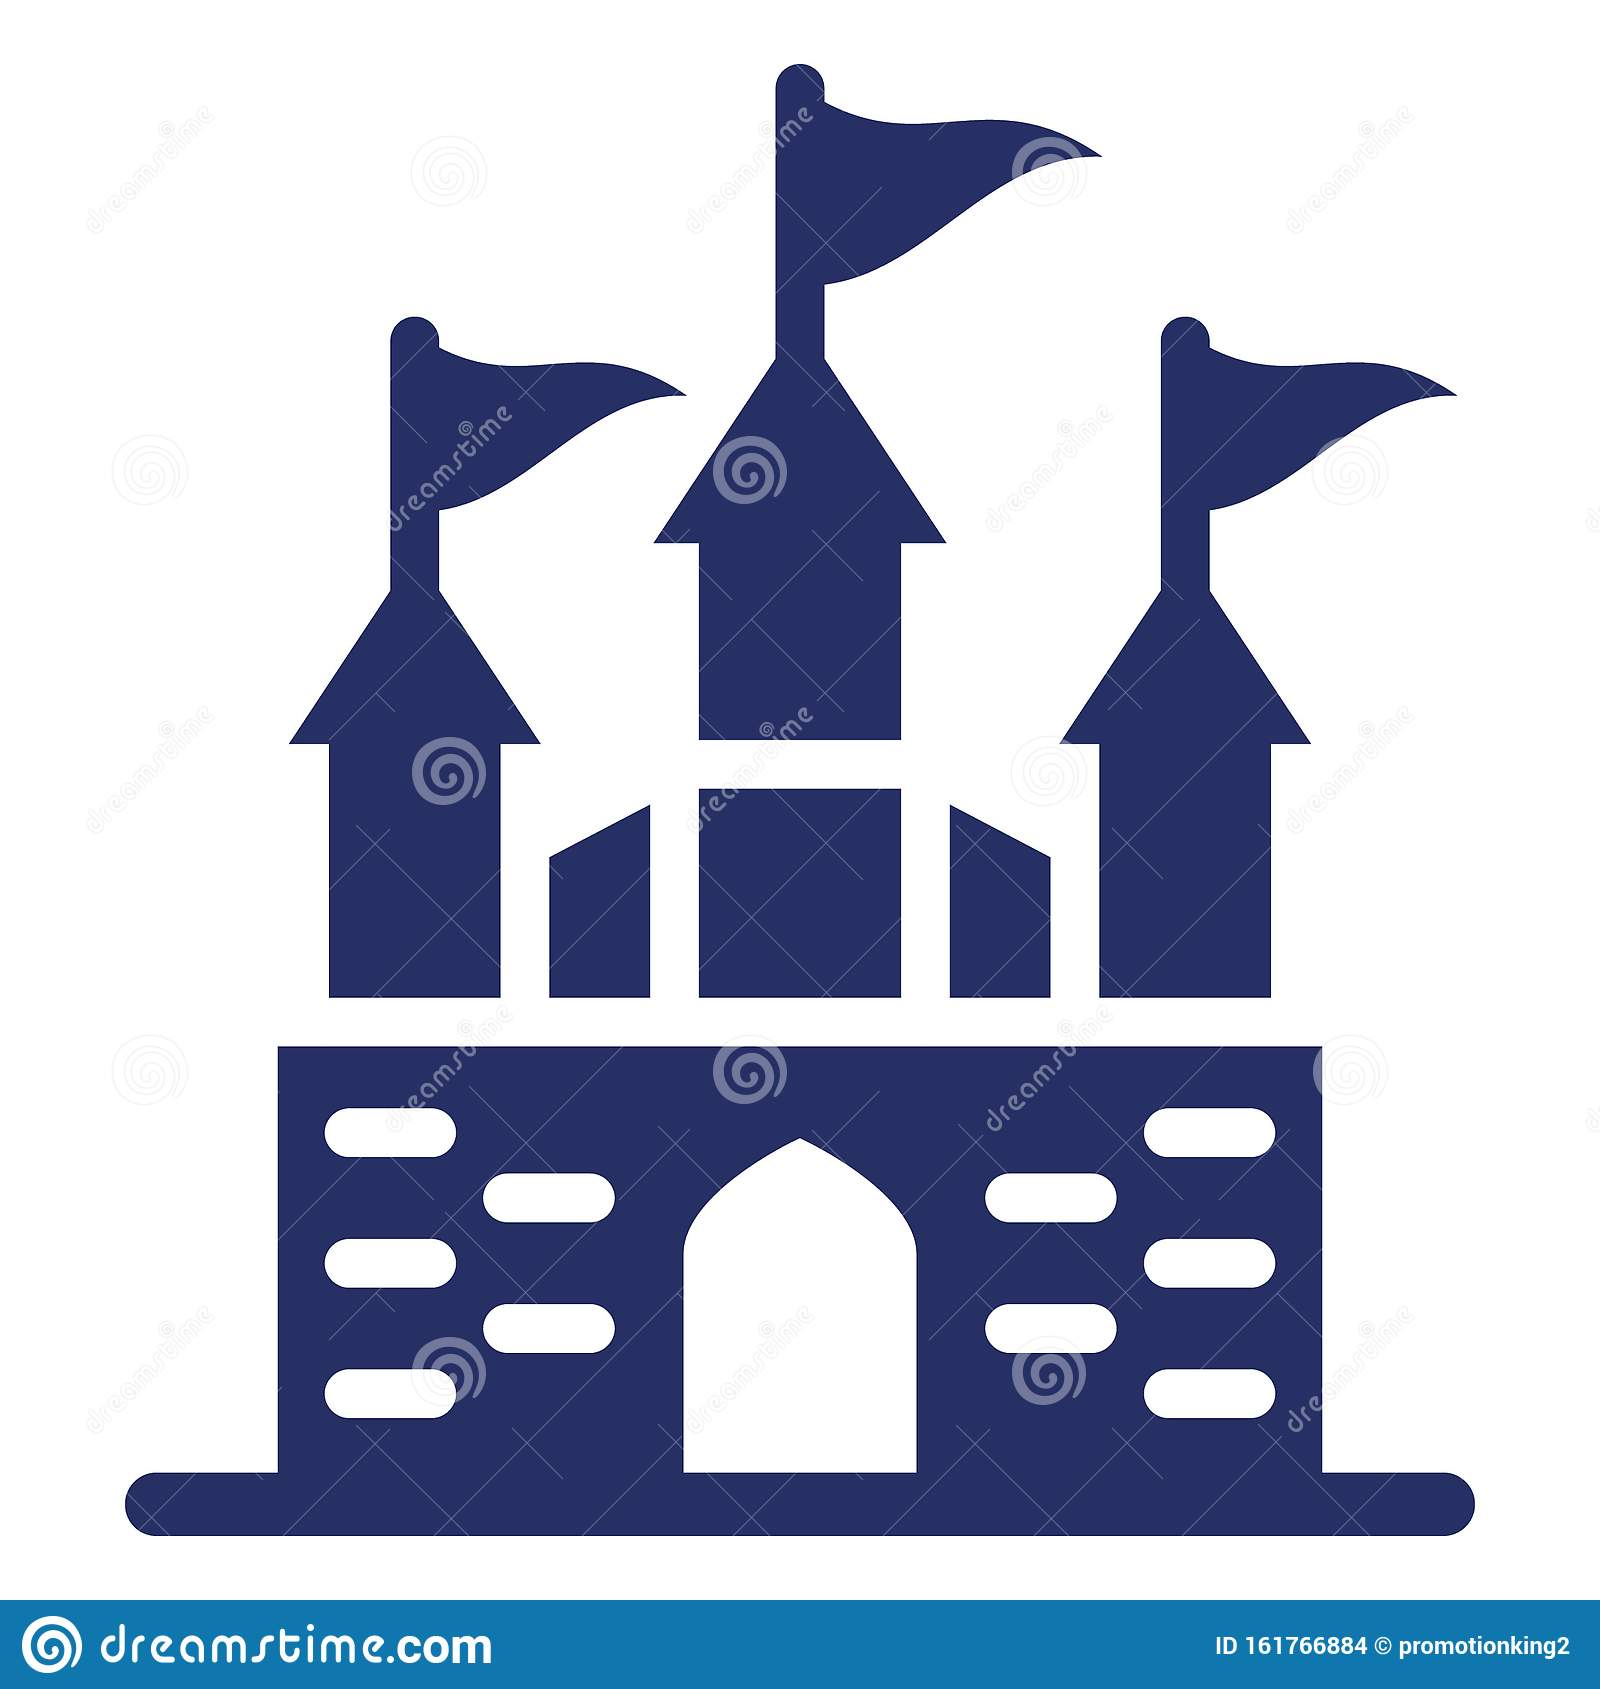 disney castle vector cinderella castle silhouette vector at getdrawings  free for space clipart   Disney castle silhouette, Disney sticker, Disney  castle